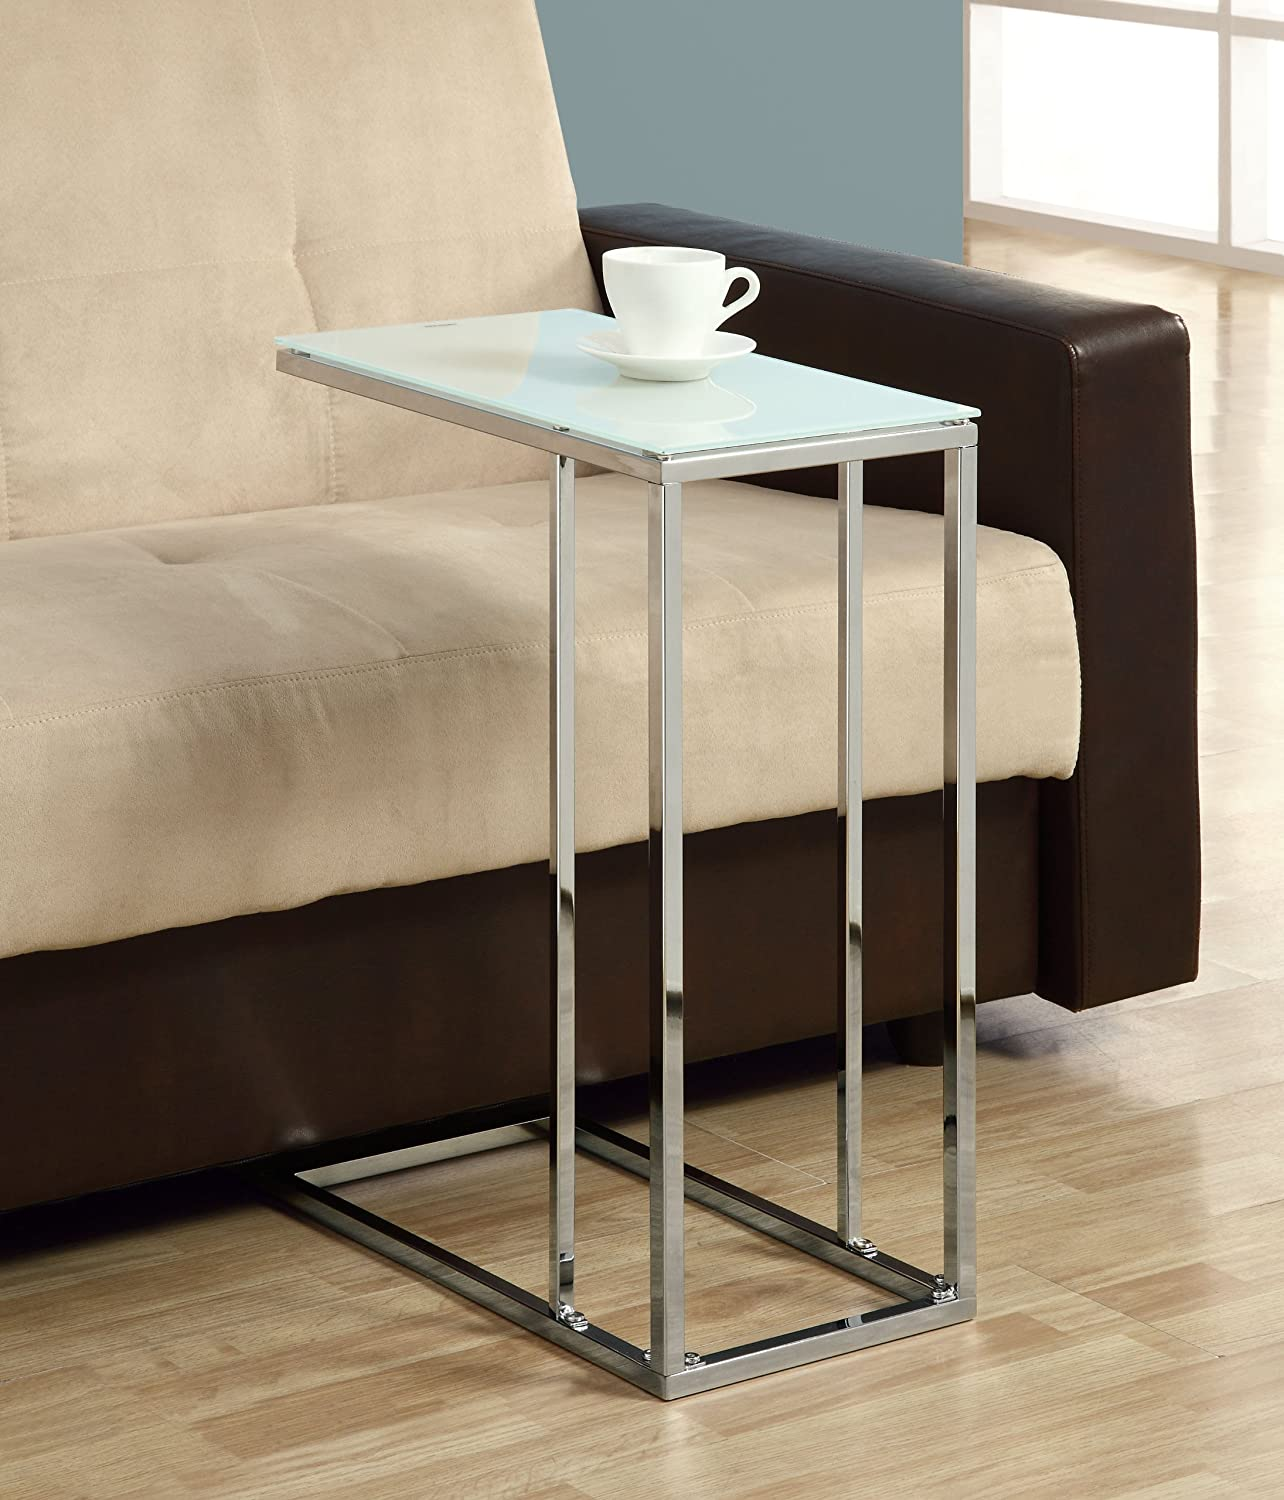 New living room coffee end table slide under couch side metal glass top chrome ebay Coffee and accent tables